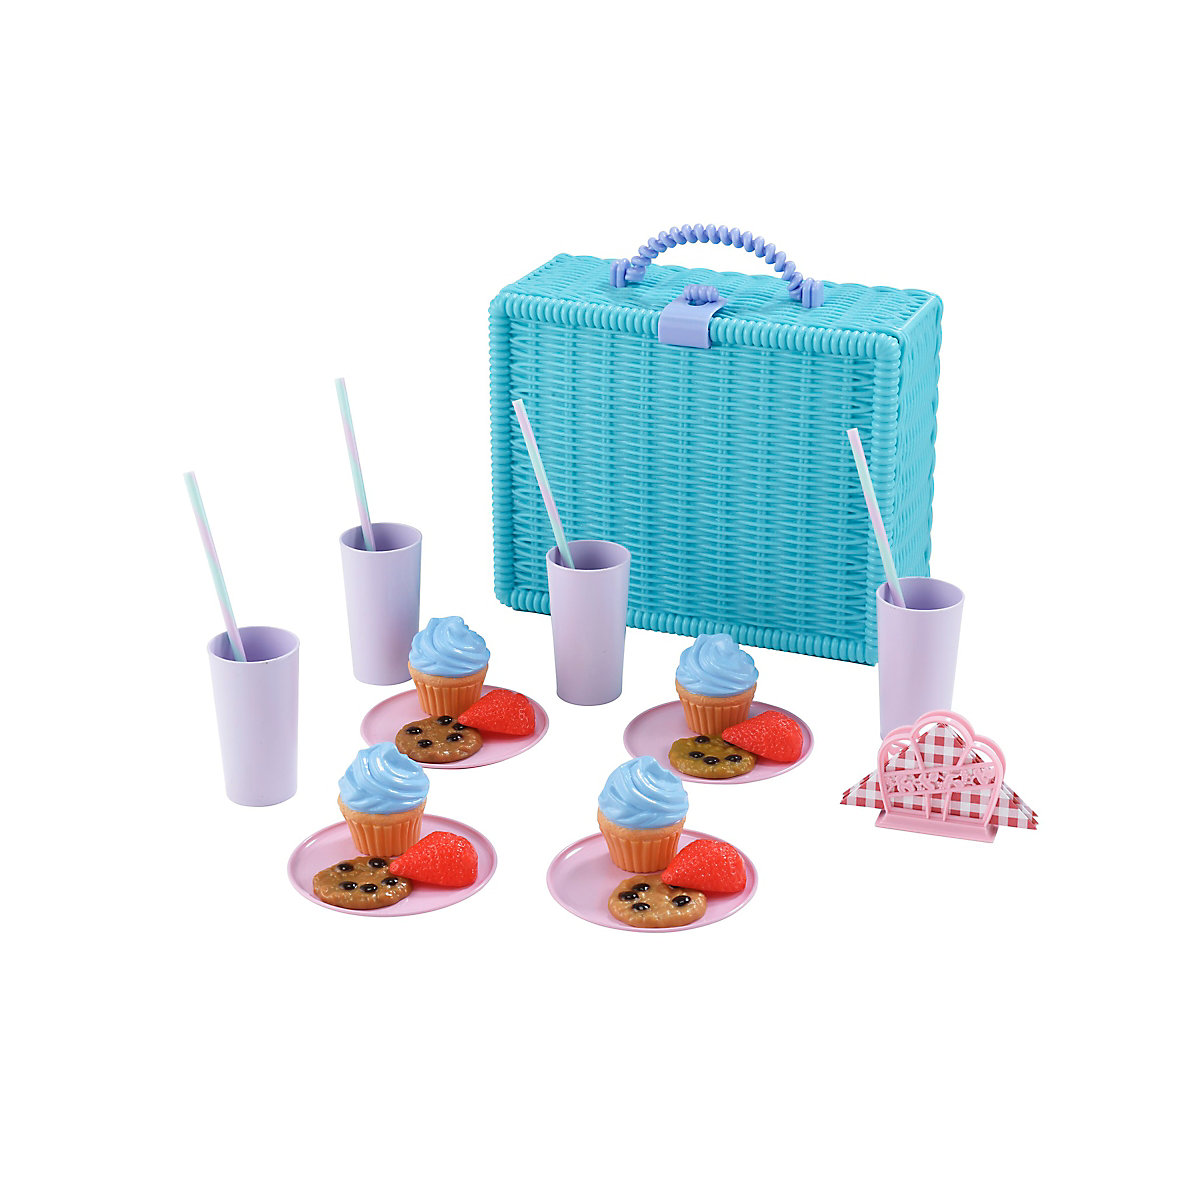 New ELC Boys and Girls Picnic Hamper for 4 Toy From 3 years